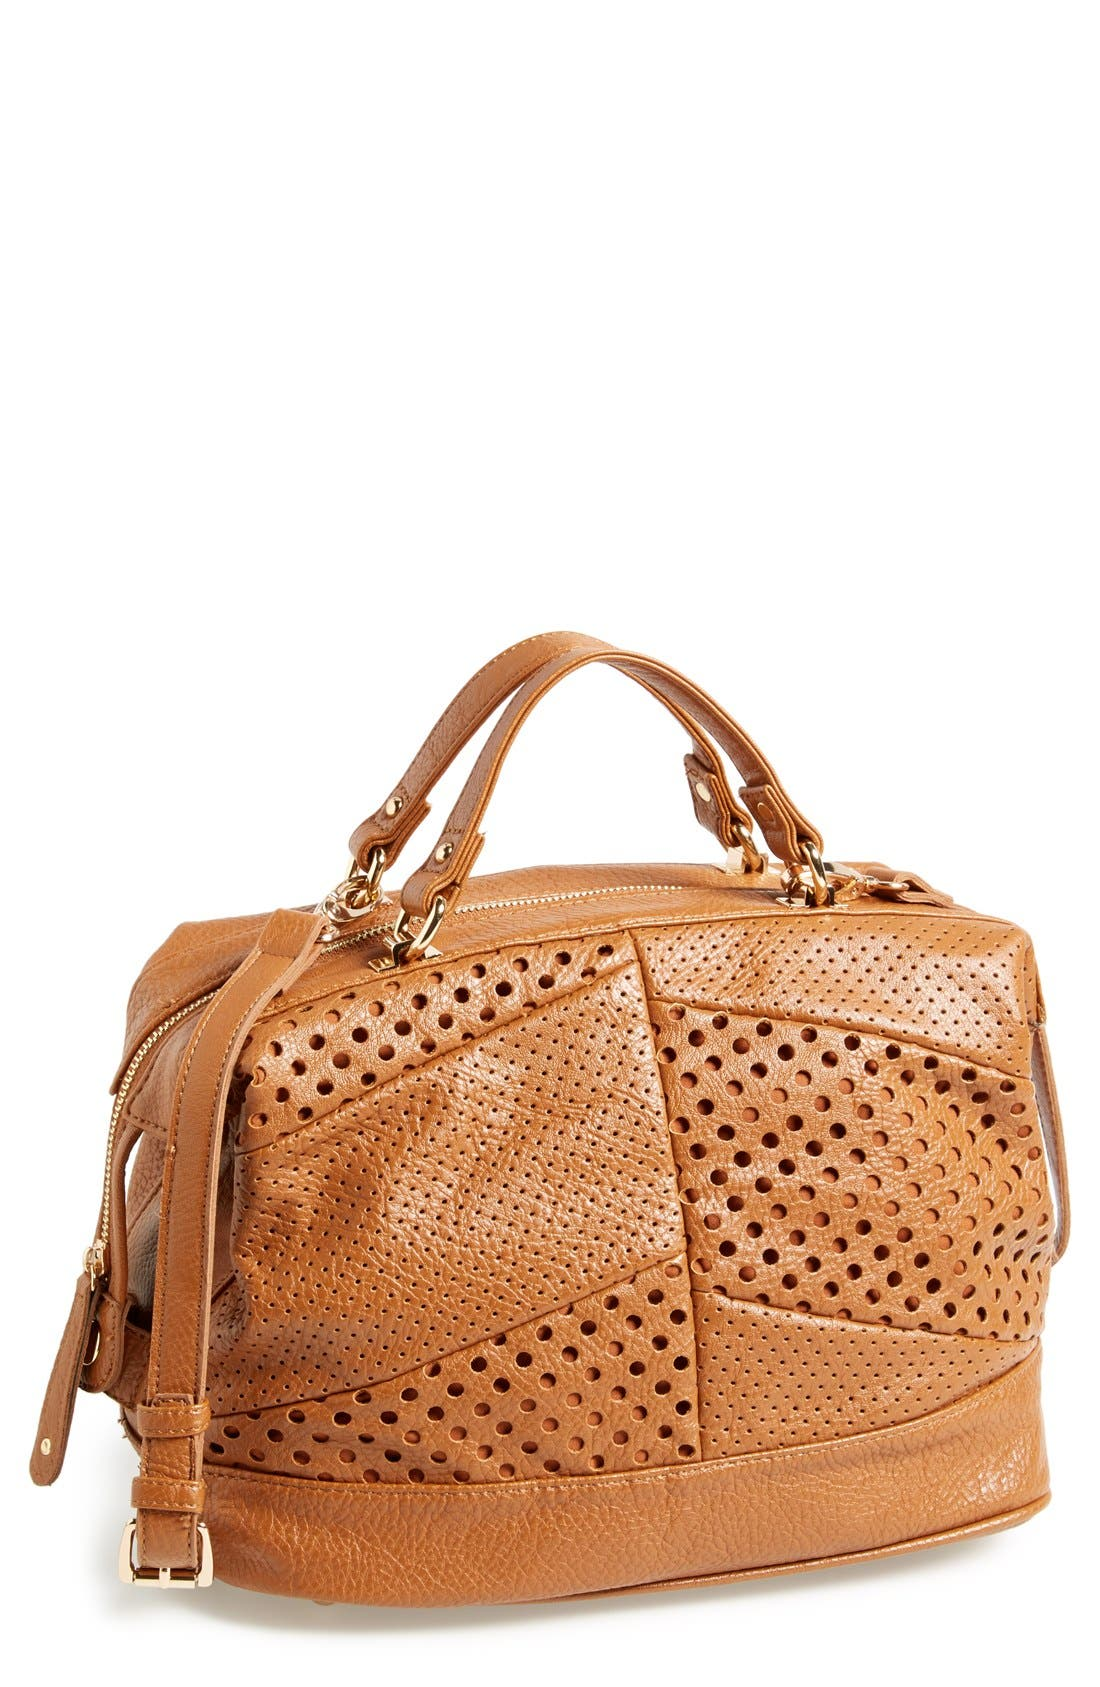 Main Image - Sole Society 'Patchwork' Perforated Faux Leather Satchel